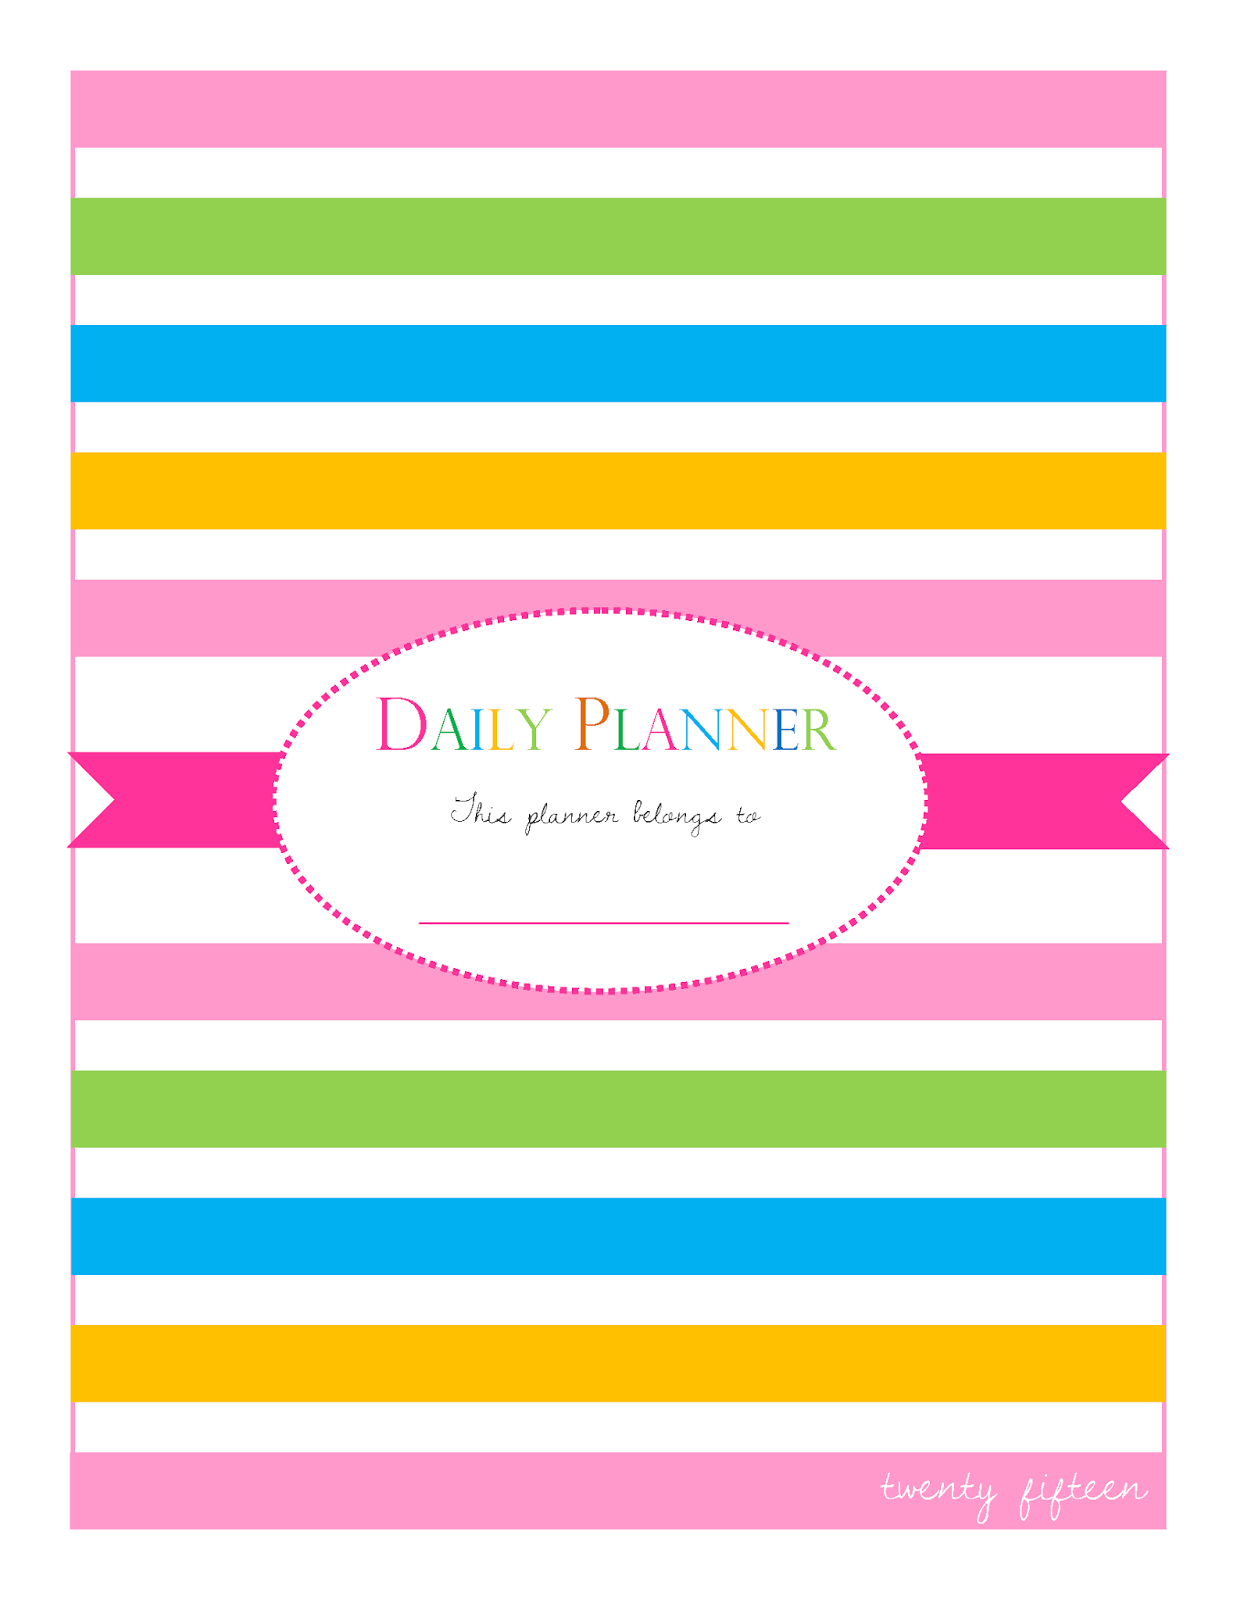 Daily Planner 2014 Printables: It's all about writing your plans and ...